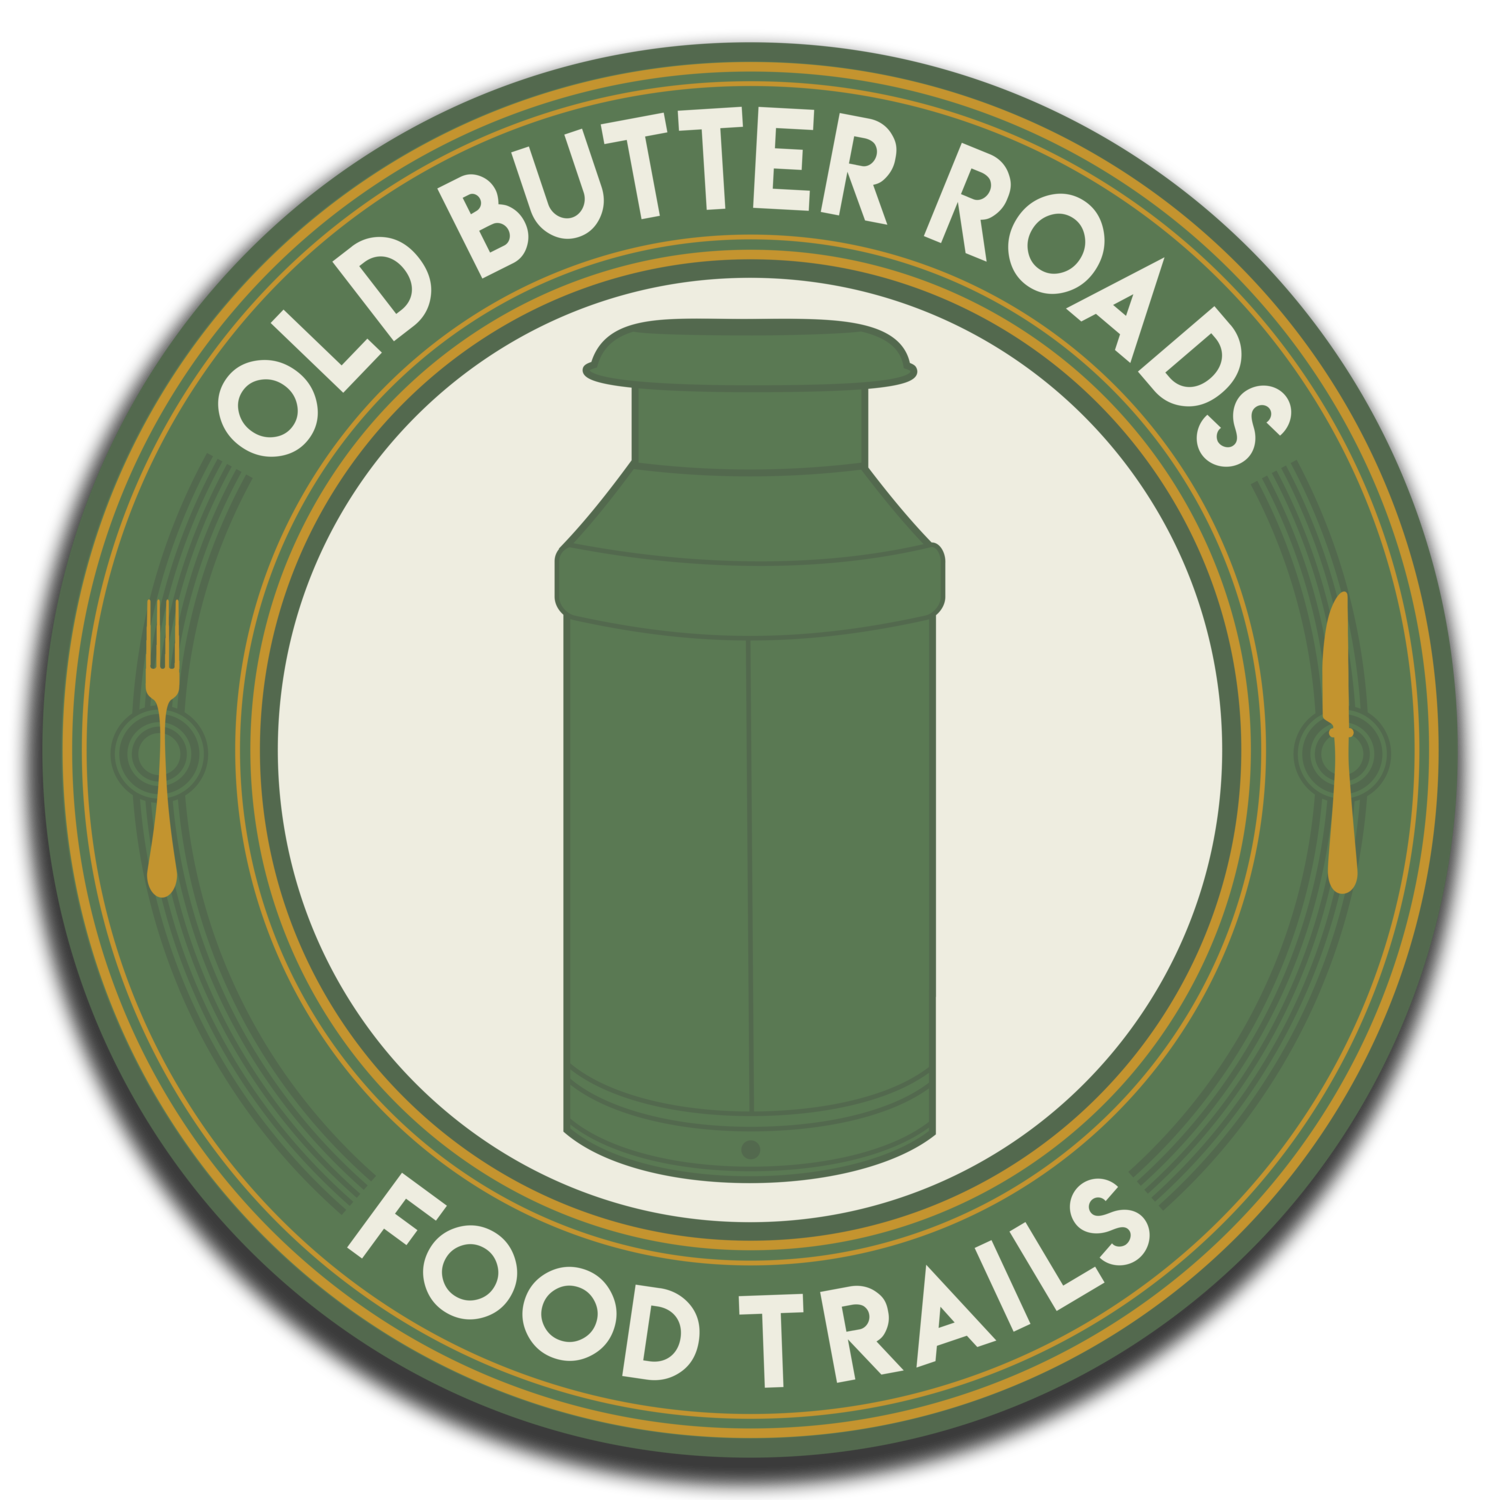 Old Butter Roads Food Trails